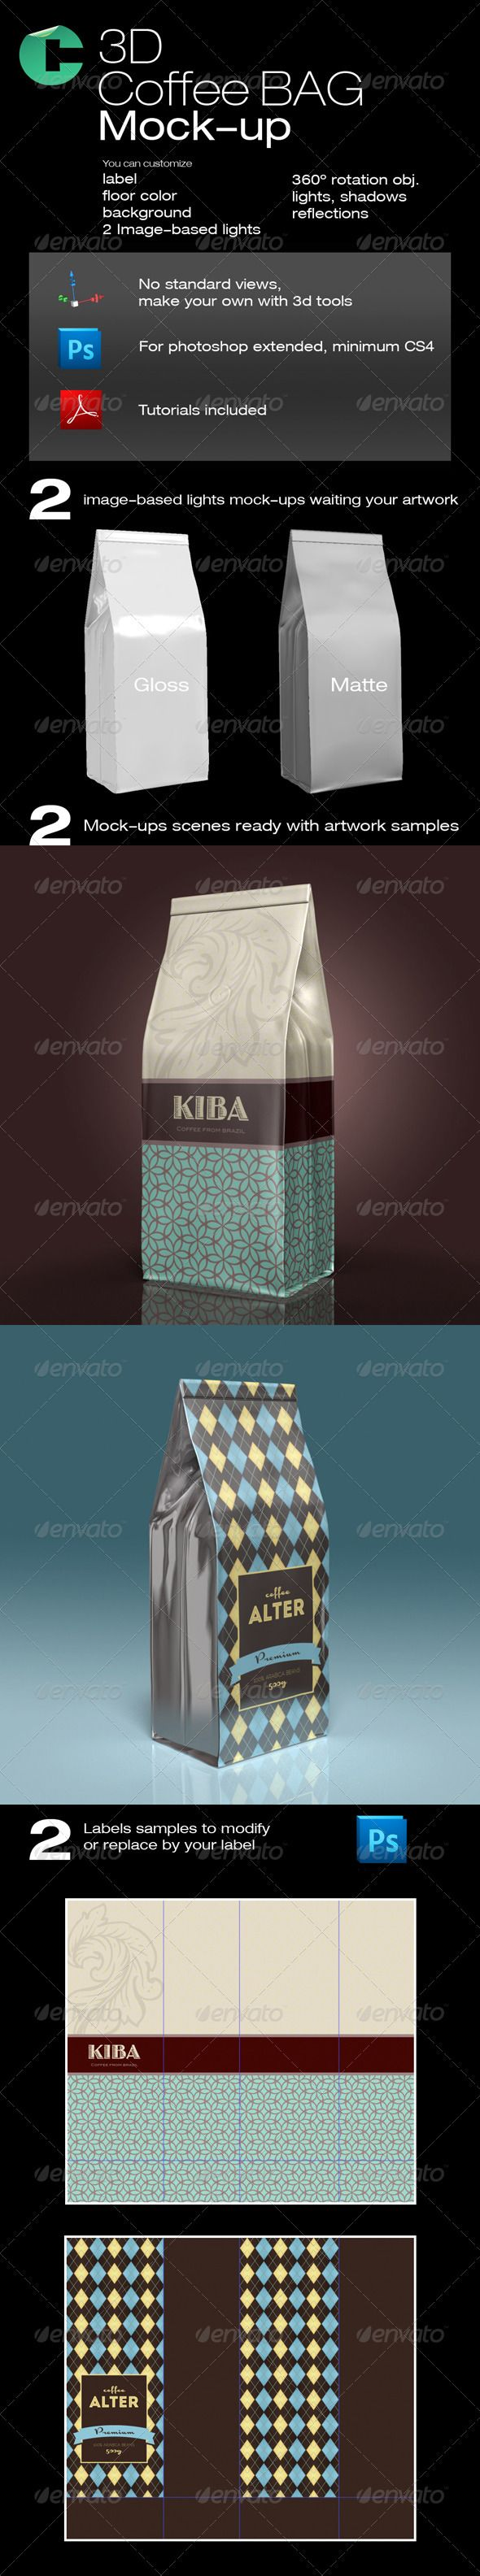 3D Object - Coffee Bag #GraphicRiver This product is compatible with Adobe Photoshop CS4 Extended and CS5 Extended PDF tutorial included for this model FEATURES • 3D model with easy customization • Rotate 360 degrees • Move around • You can set any background • You can scale up to 4000x4000 pixels • Label placeholder • Remove floor • Object Shadows • Floor reflections • Lights control In this set: 2 PDF tutorials, 4 3d models, 2 reference labels in photoshop PDF Tutorial – issuu…